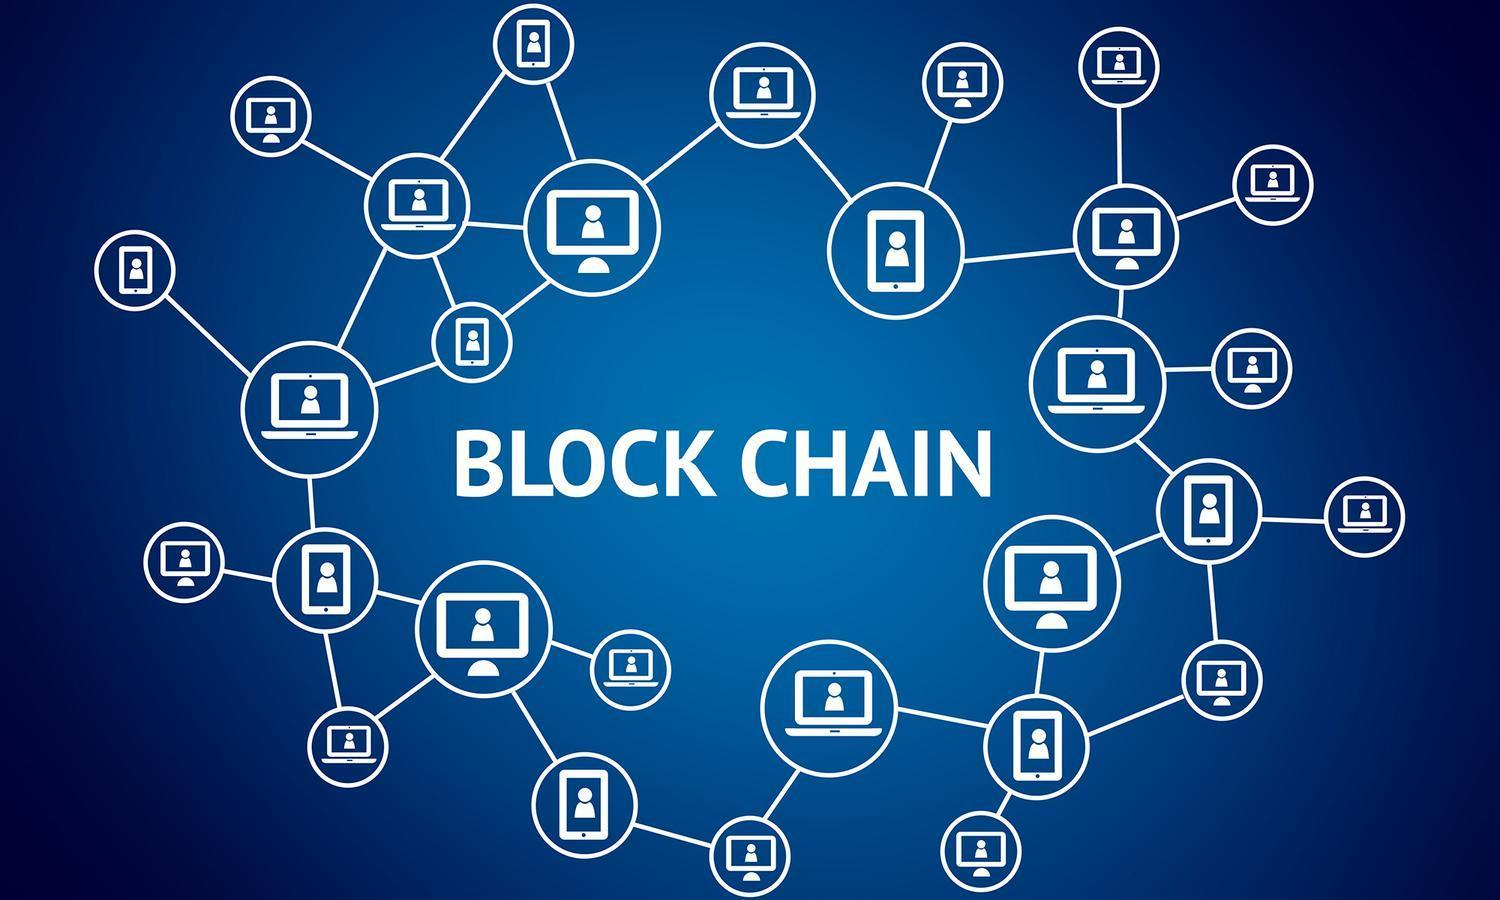 A Great Deal Of Attention Has Recently Been Focused On Virtual Currency Exchange Among Individuals And Companies Using Initial Coin Offerings Icos To